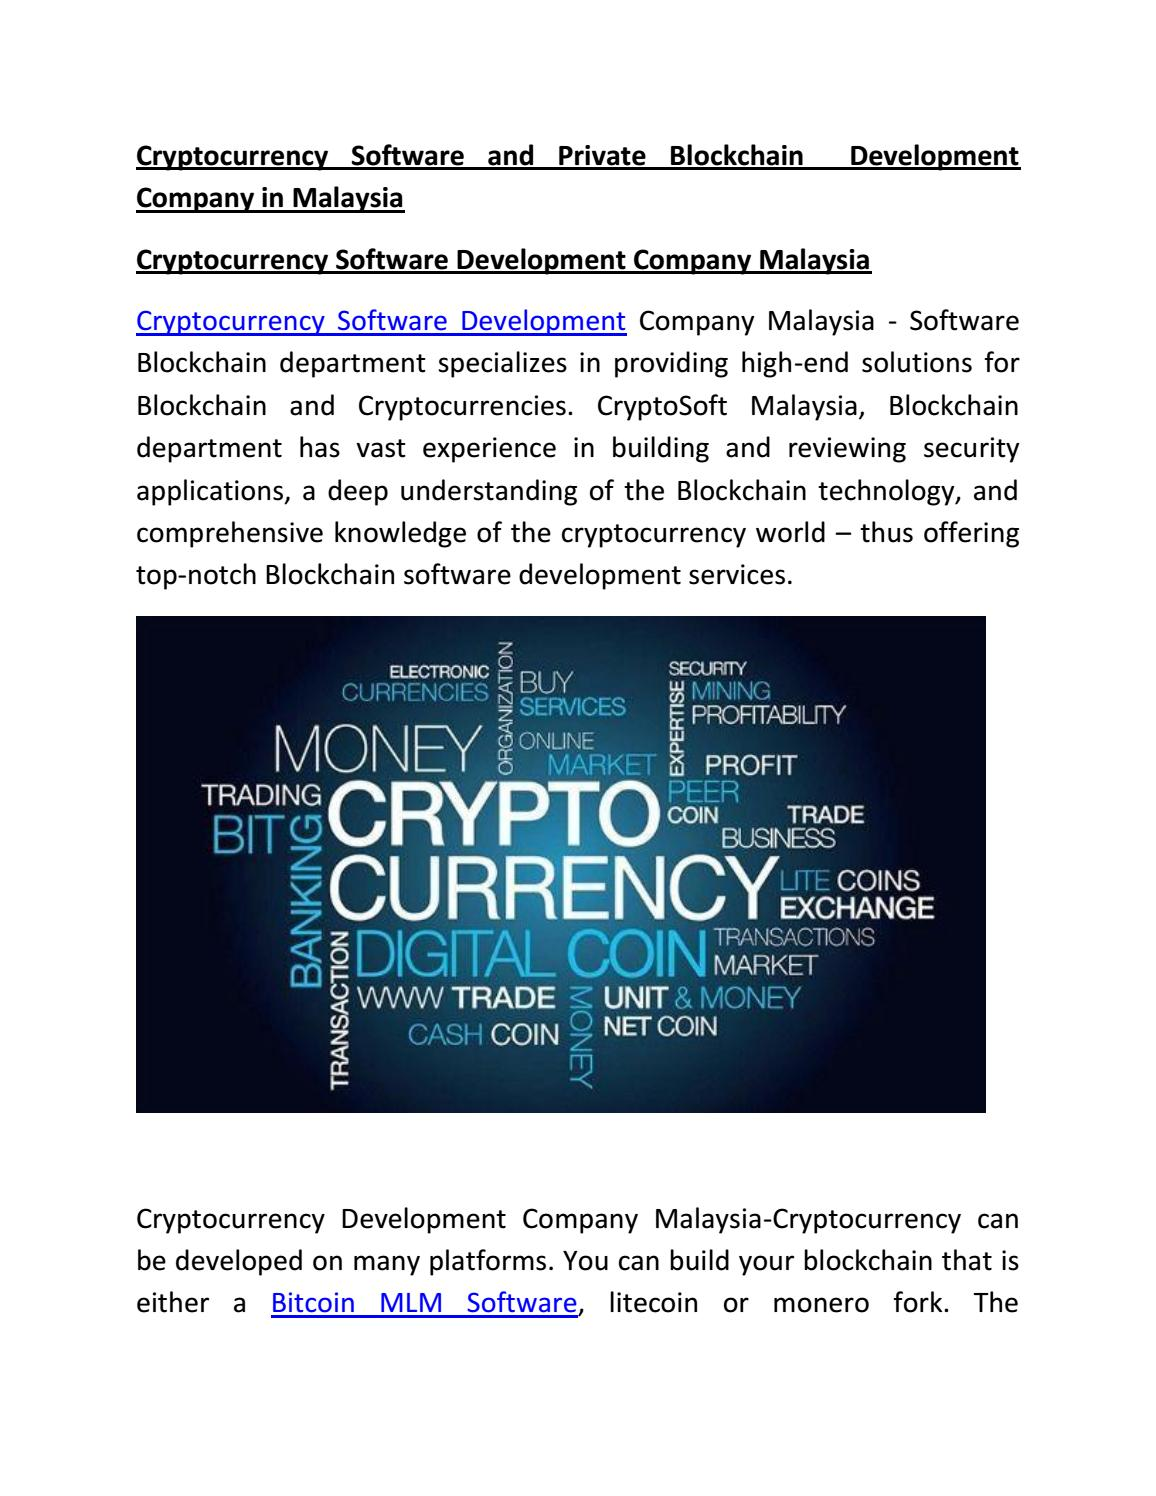 how to buy other cryptocurrency in malaysia